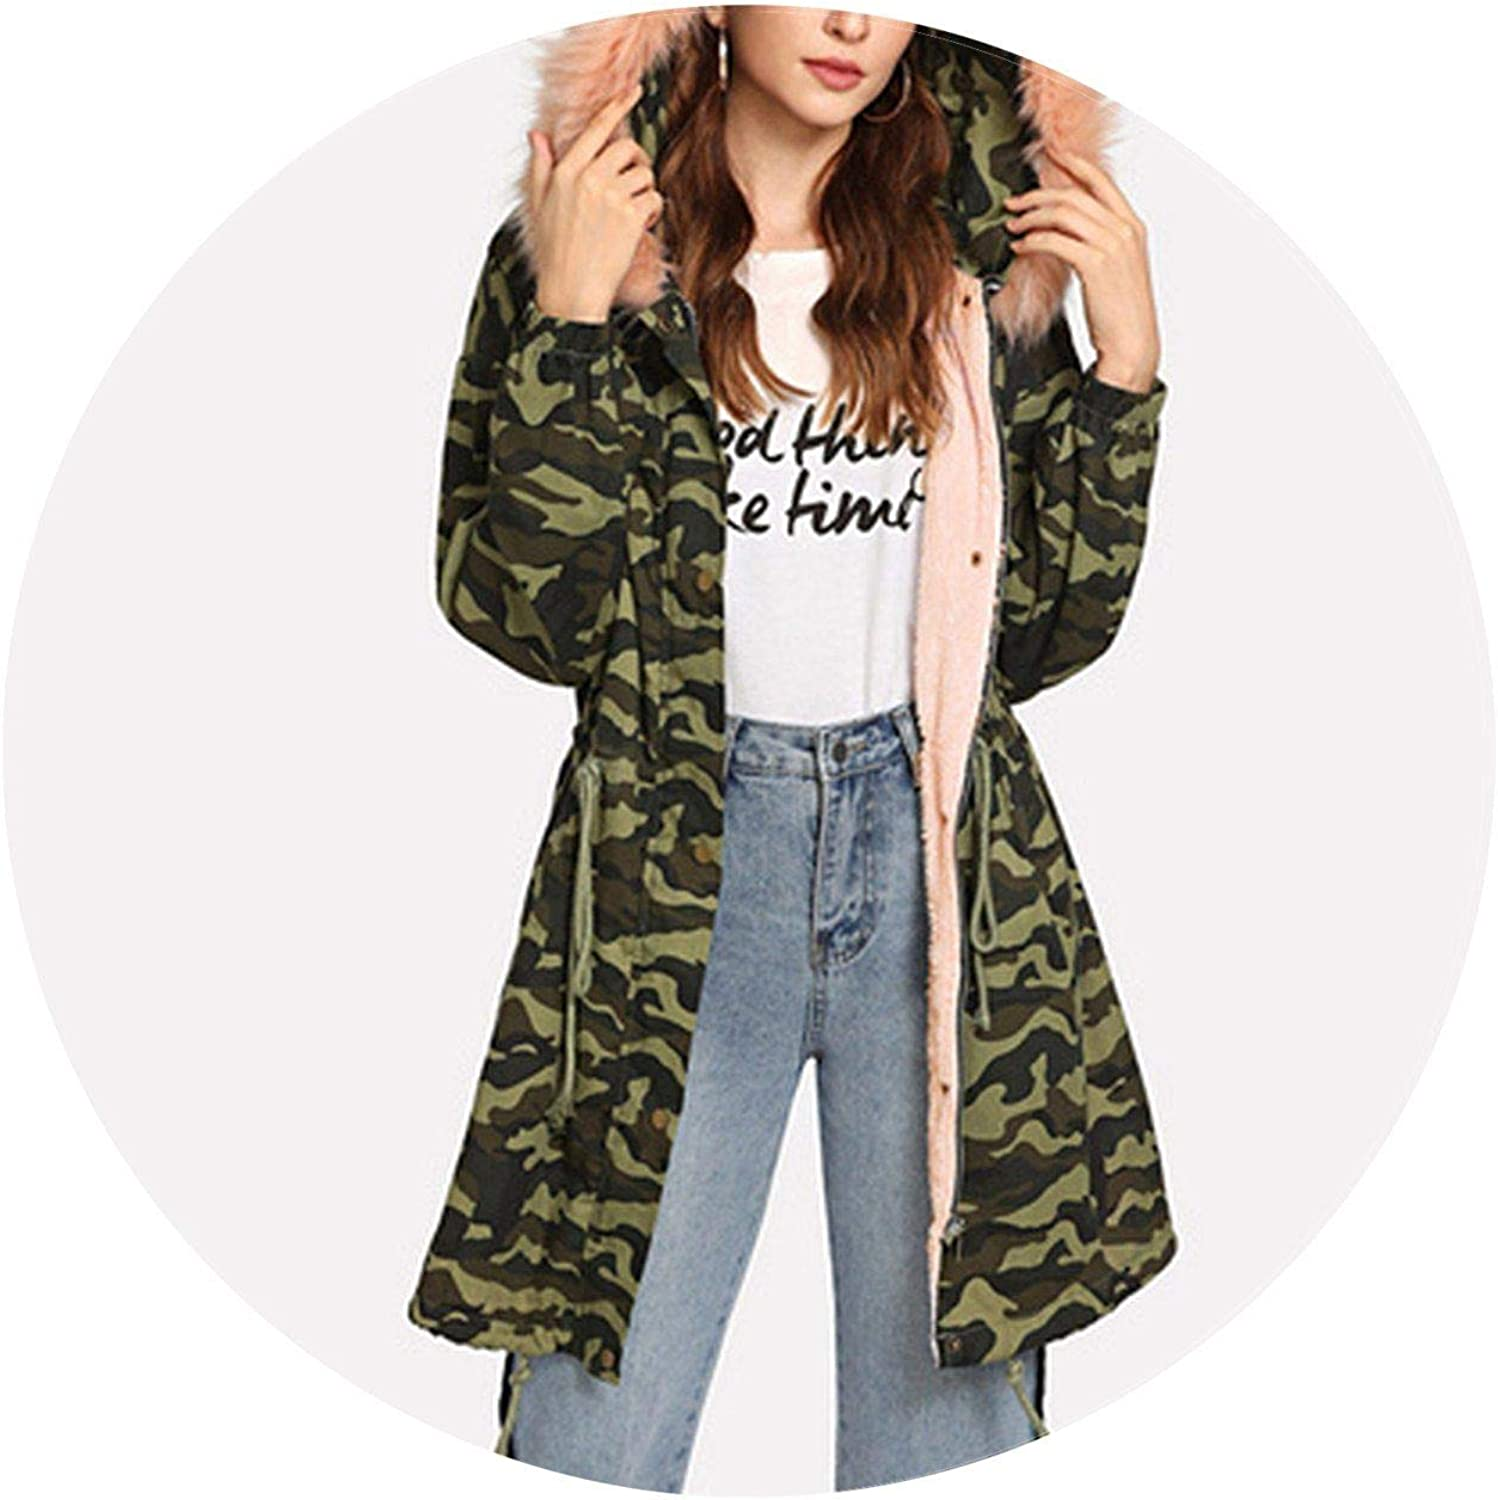 Jifnhtrs Hooded Faux Fur Como Print Jacket Women Coat Sleeve Ladies Outwear Office Warm Winter Coats